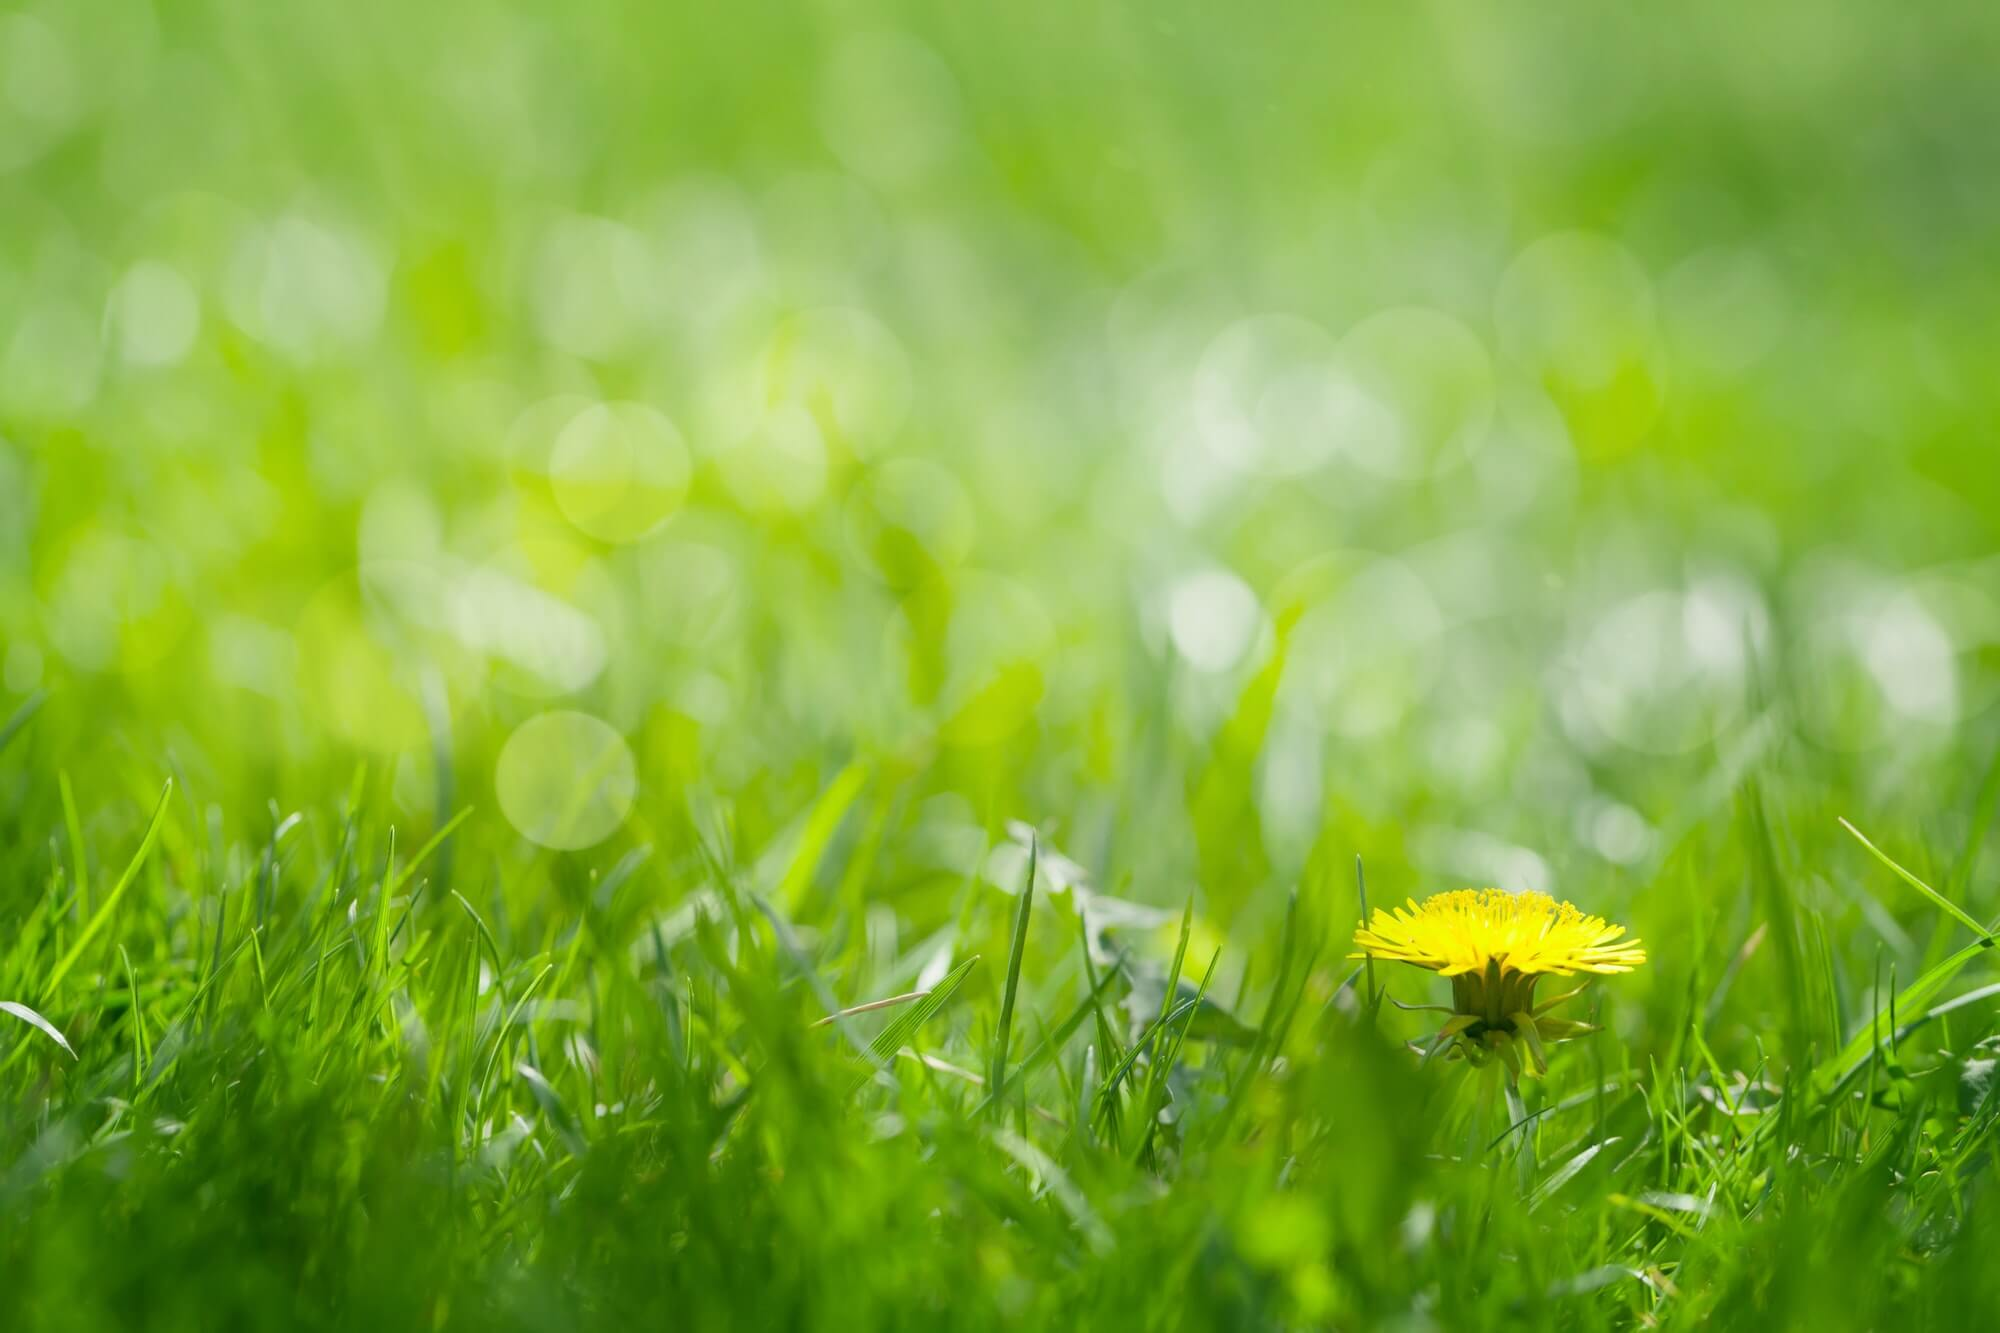 green-grass-field-with-yellow-dandelion-1